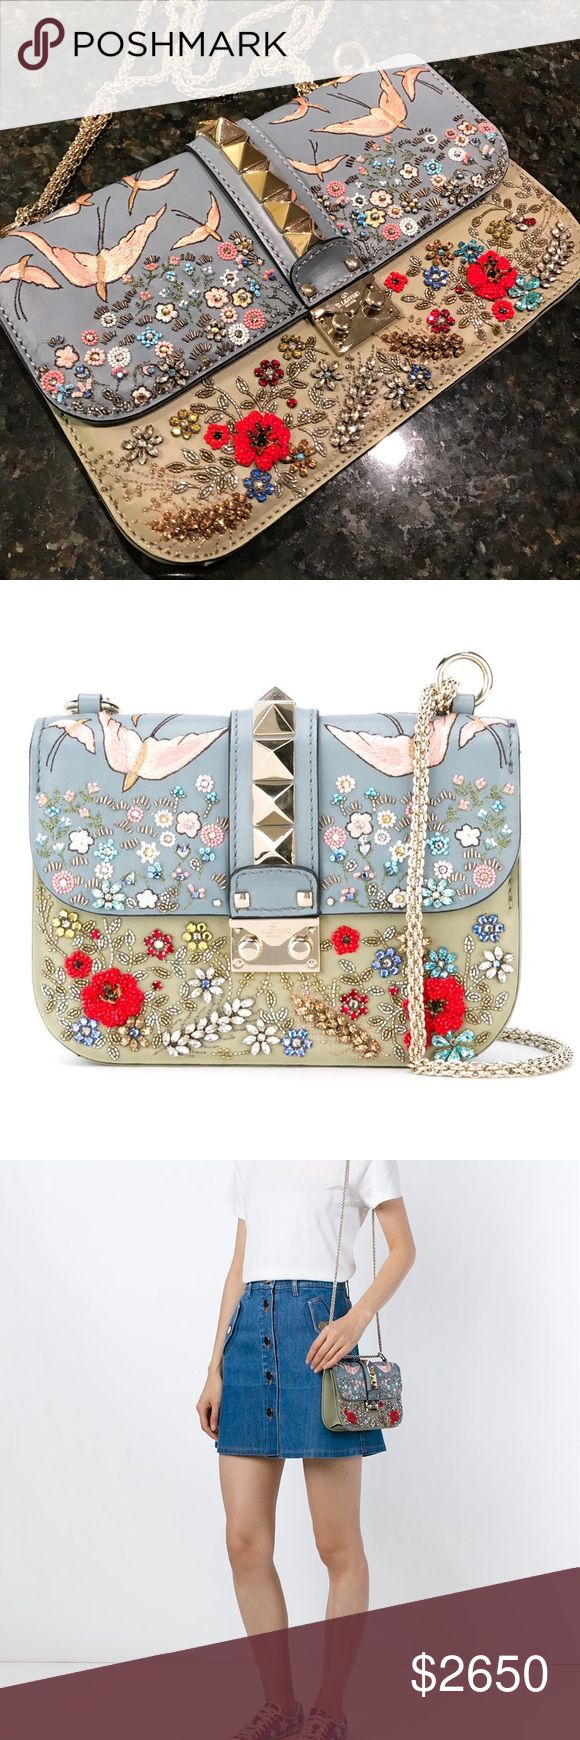 """Valentino Rocklock """"glam lock"""" embroidered bag Multicoloured lambskin 'Glam Lock' embroidered shoulder bag from Valentino Garavani featuring a foldover top with push-lock closure, gold-tone Rockstud embellishments, a gold-tone chain shoulder strap, an internal zipped pocket and an internal logo patch. Made in Italy Product Strap: 12.6 in Depth: 2.4 in Width: 7.9 in Height: 5.9 in Sample sale, pen mark on the label. Missing 3 gems but does not affect overall looks, other than that In new…"""